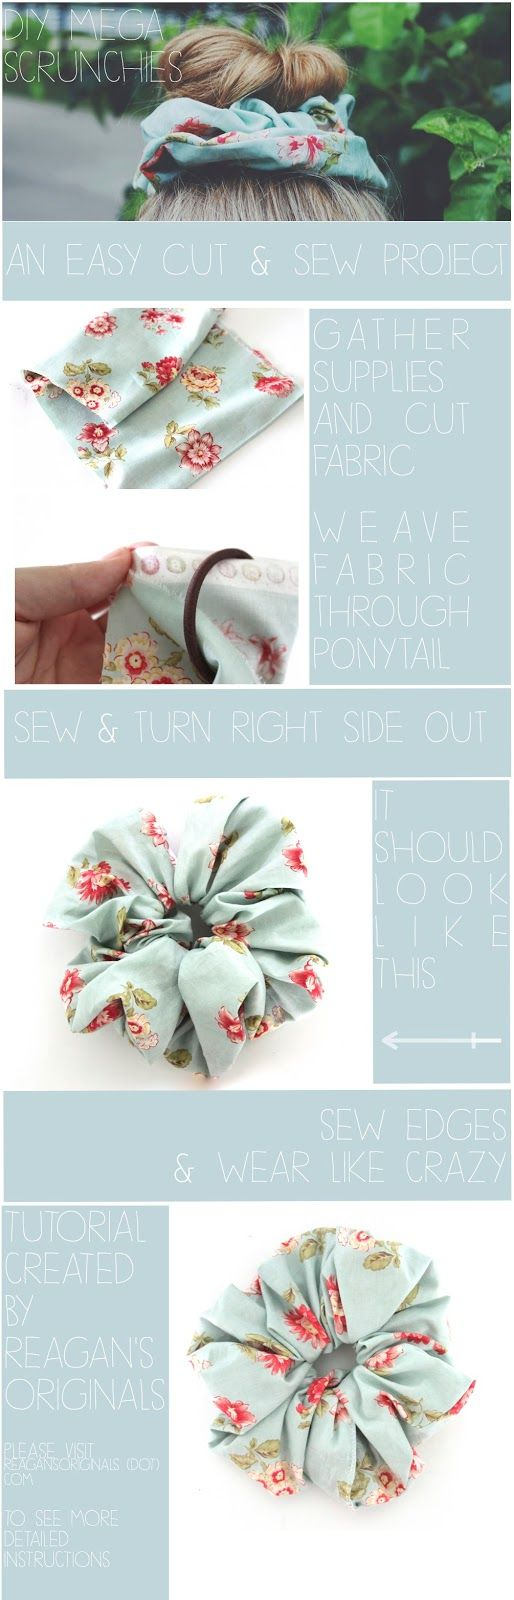 LilyAllsorts: DIY Hair Scrunchie: Pinterest Challenge February